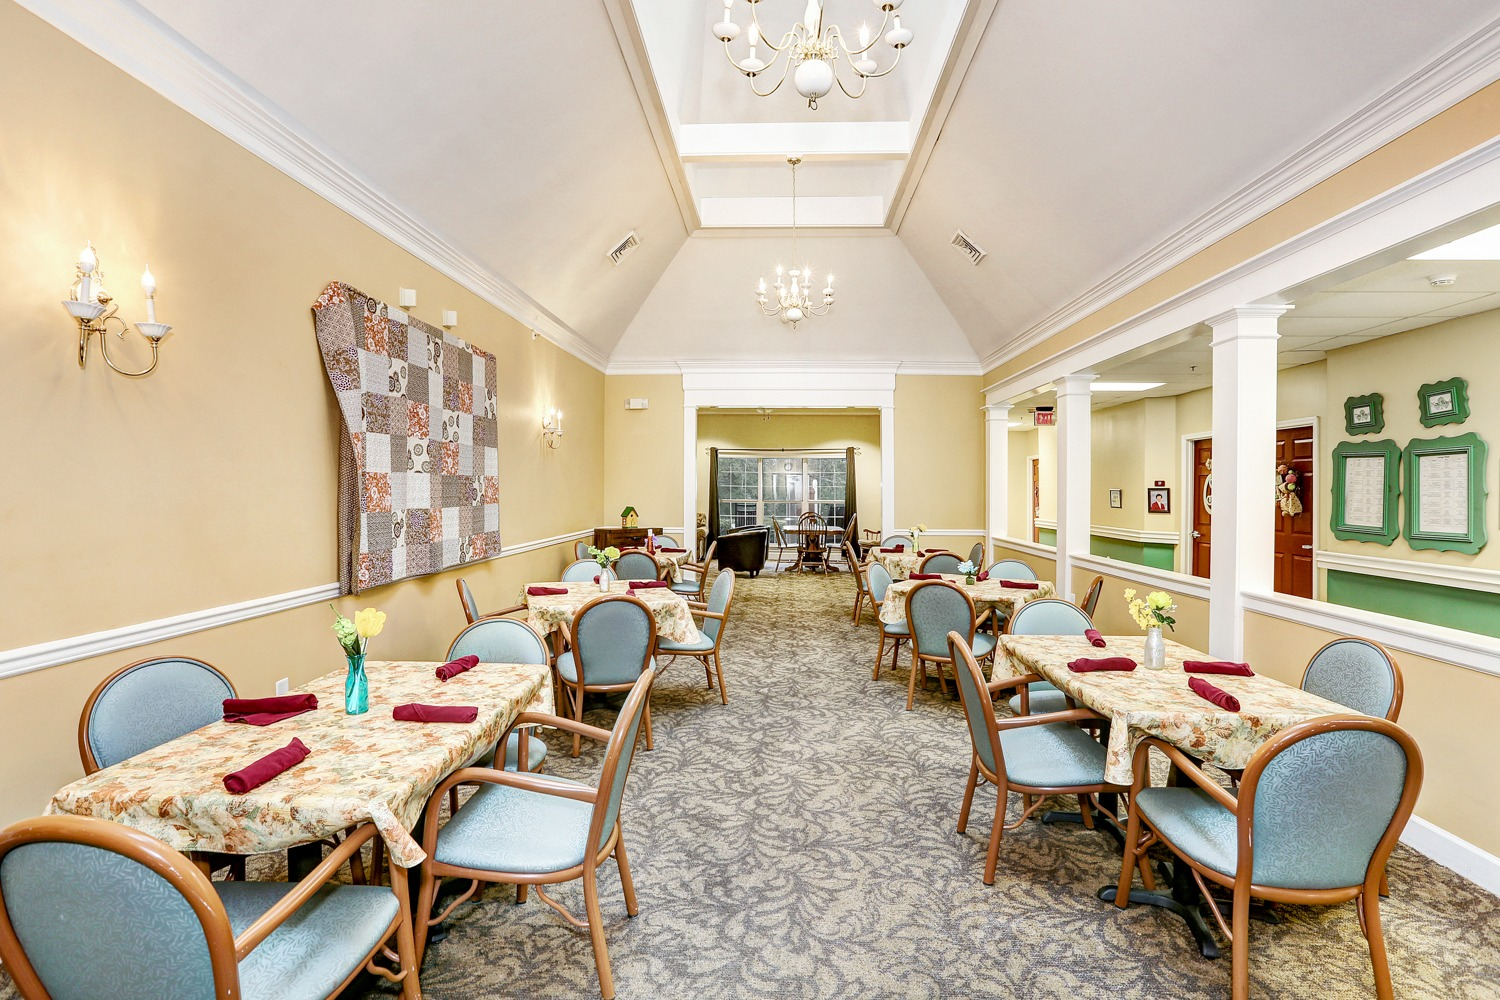 Corinth, MS - Dining Room